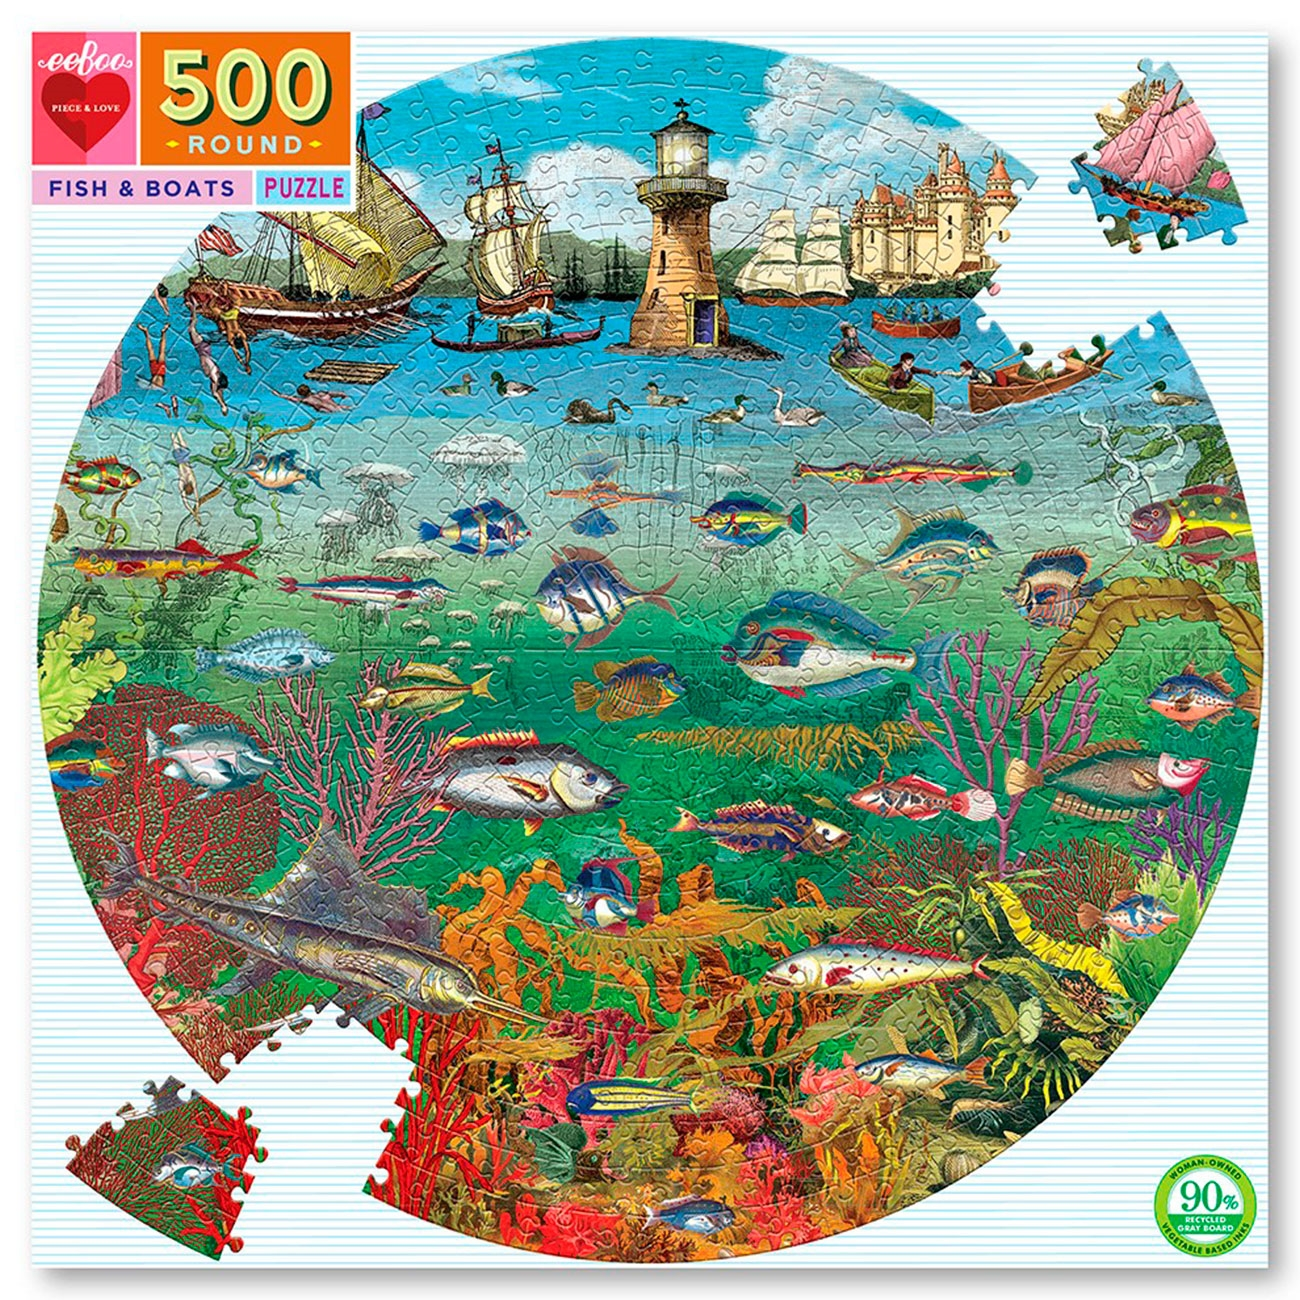 eeboo-puslespil-puzzle-fisk-og-baade-fish-and-boats